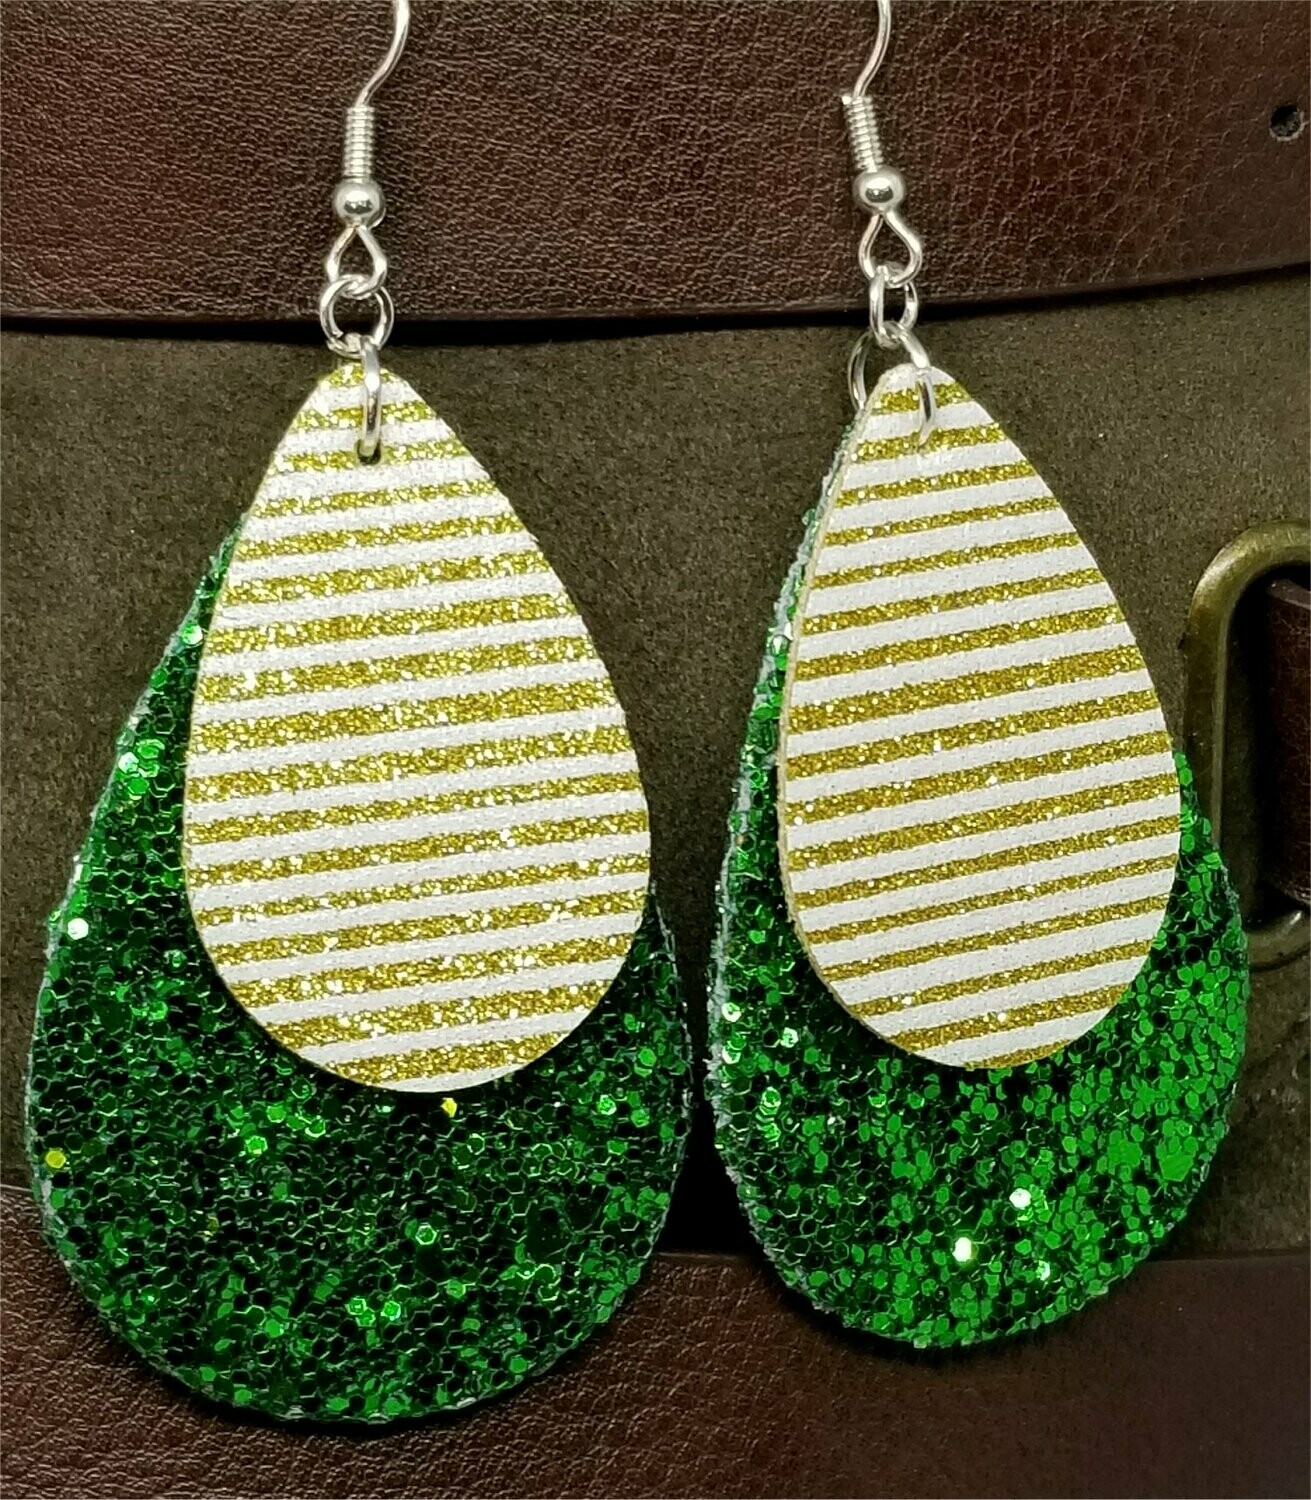 Chunky Green Glitter Very Sparkly Double Sided FAUX Leather Teardrops with Metallic Gold Striped FAUX Leather Teardrop Overlay Earrings